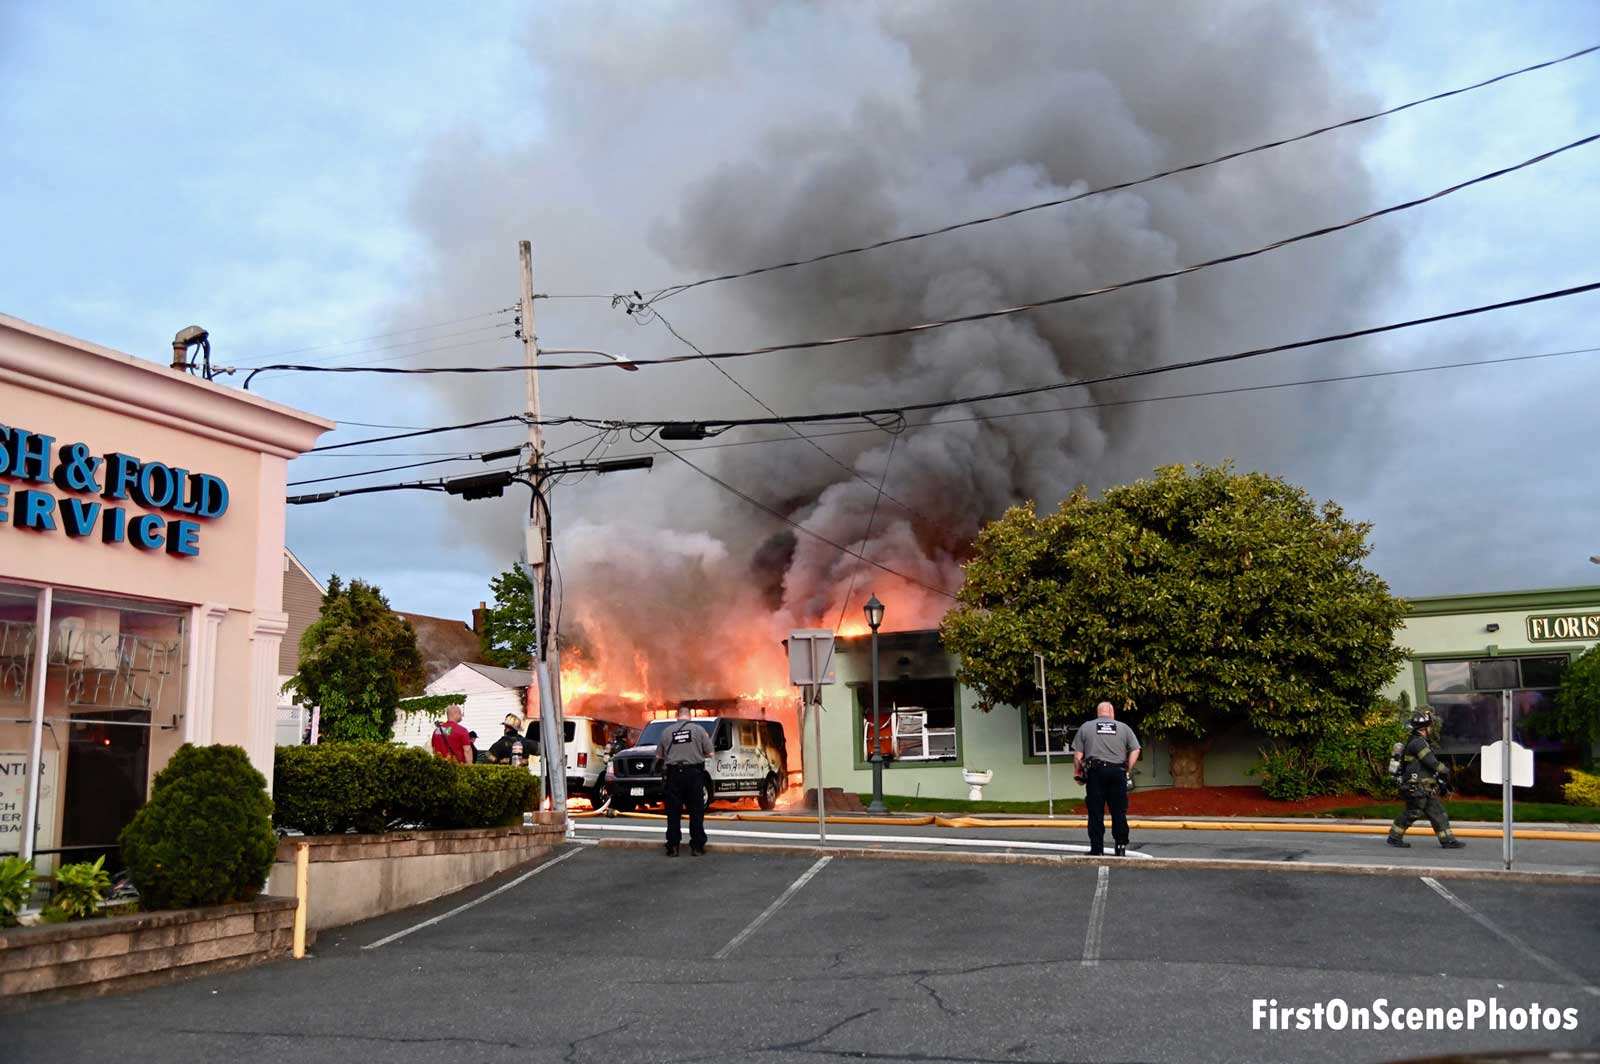 Flames shoot from a florist in West Hempstead, New York.